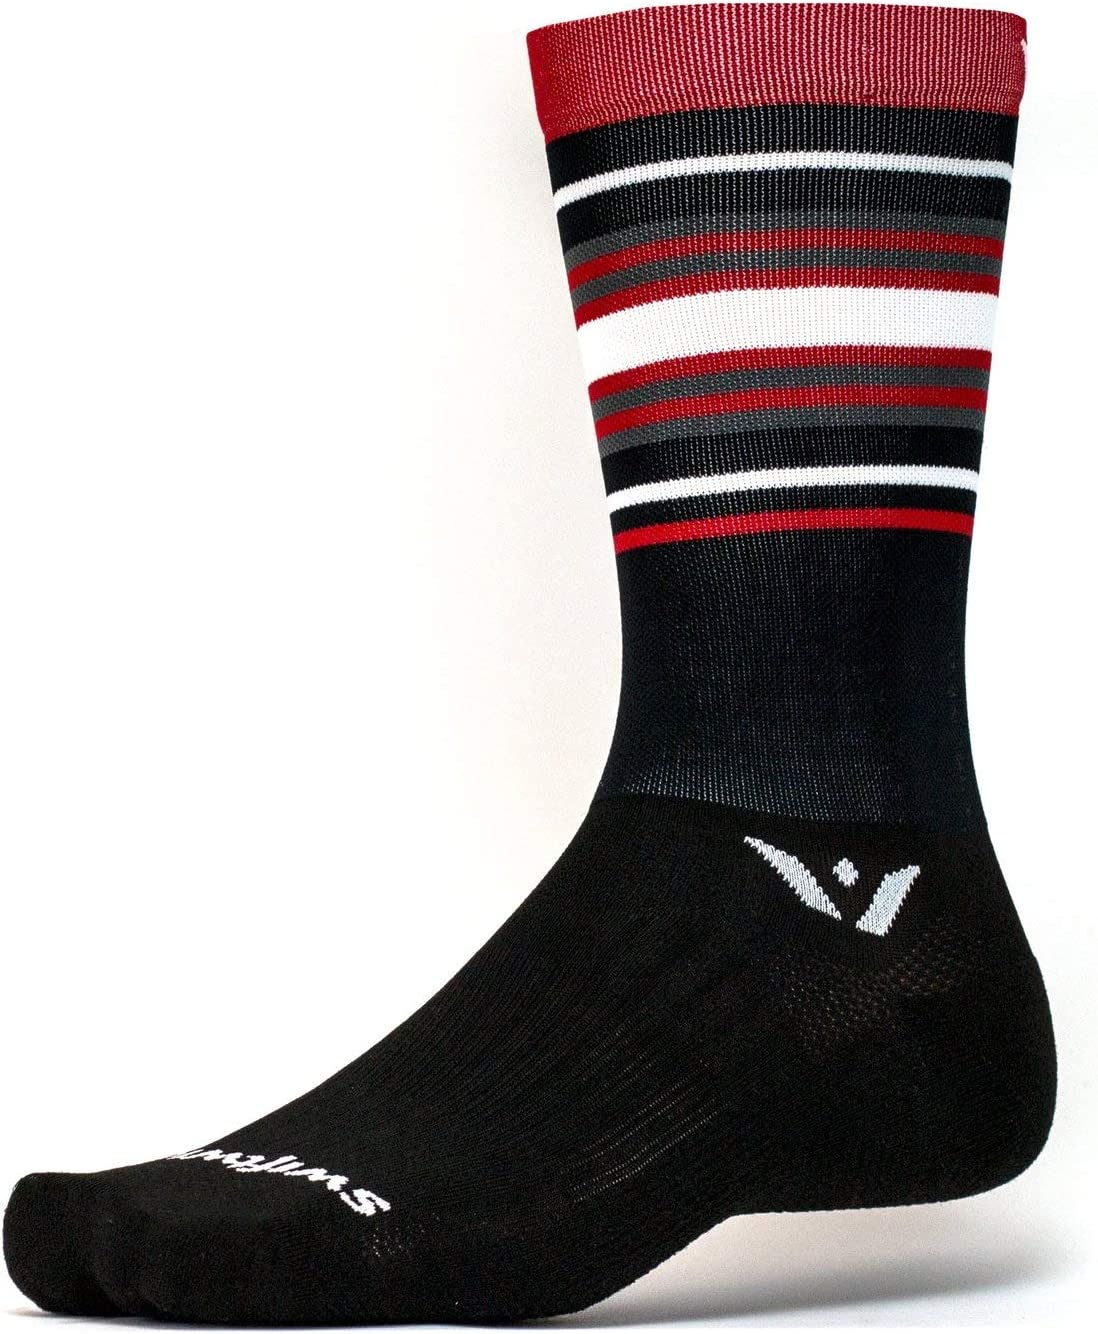 Swiftwick Crew Socks for Cycling Aspire Seven